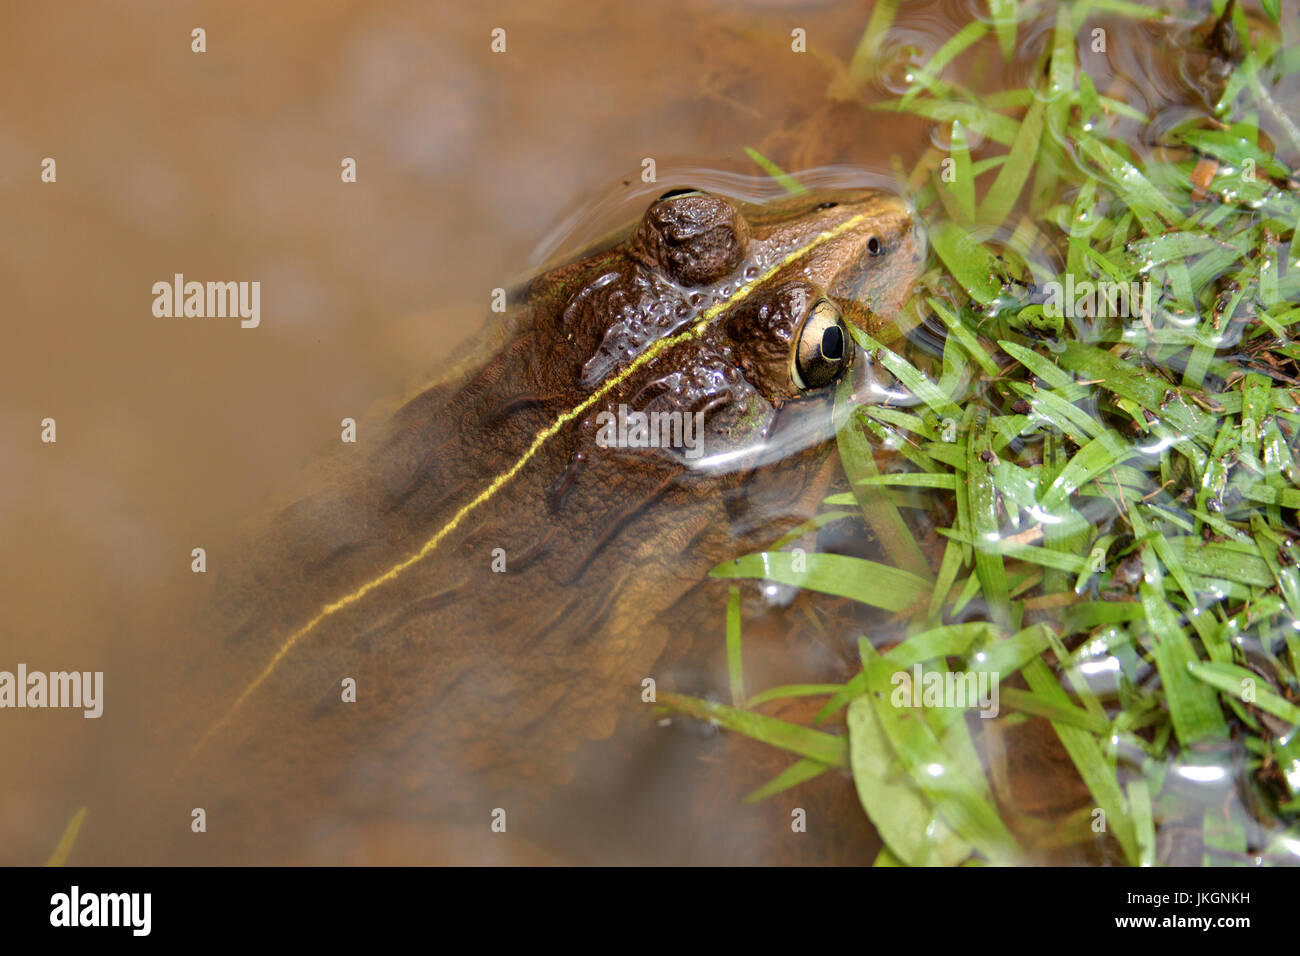 Indian bullfrog with golden eyes lurking in the pond - Stock Image